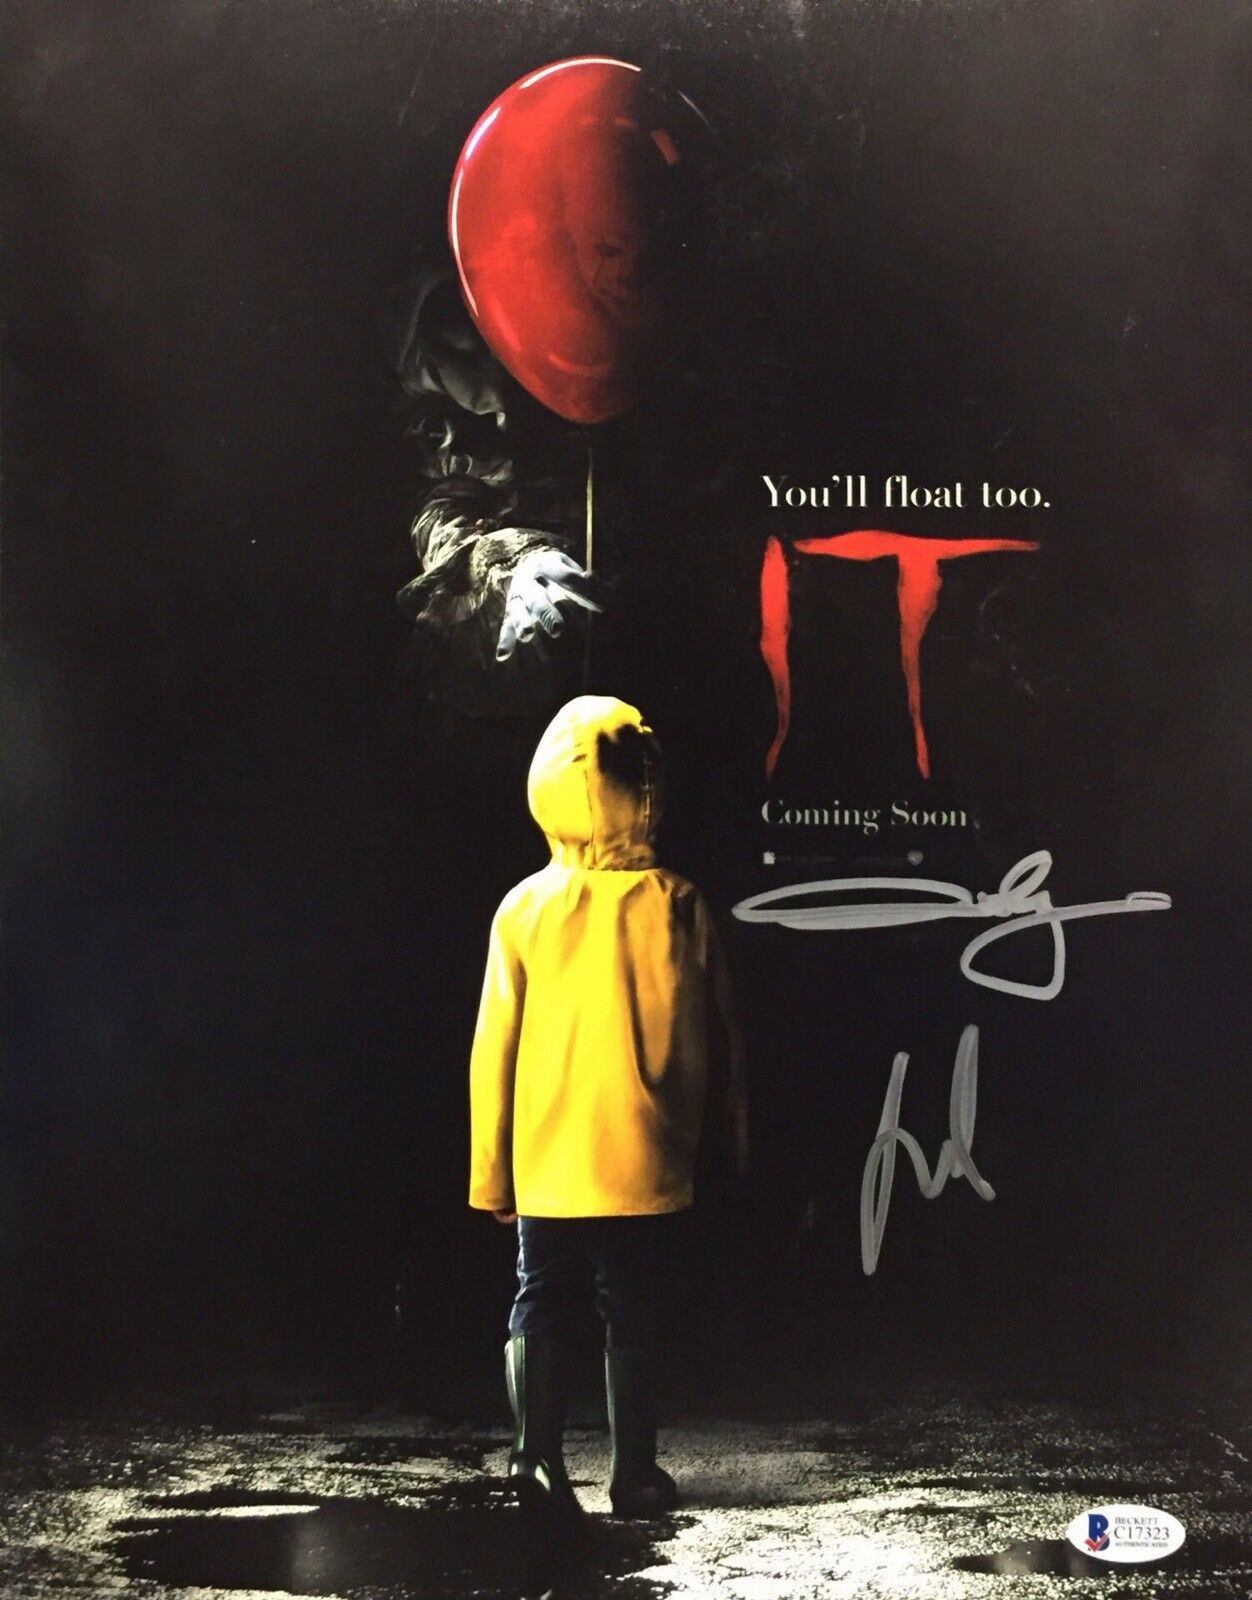 Jaeden Lieberher And Andy Muschietti Signed 'It' 11x14 Photo Beckett C17323